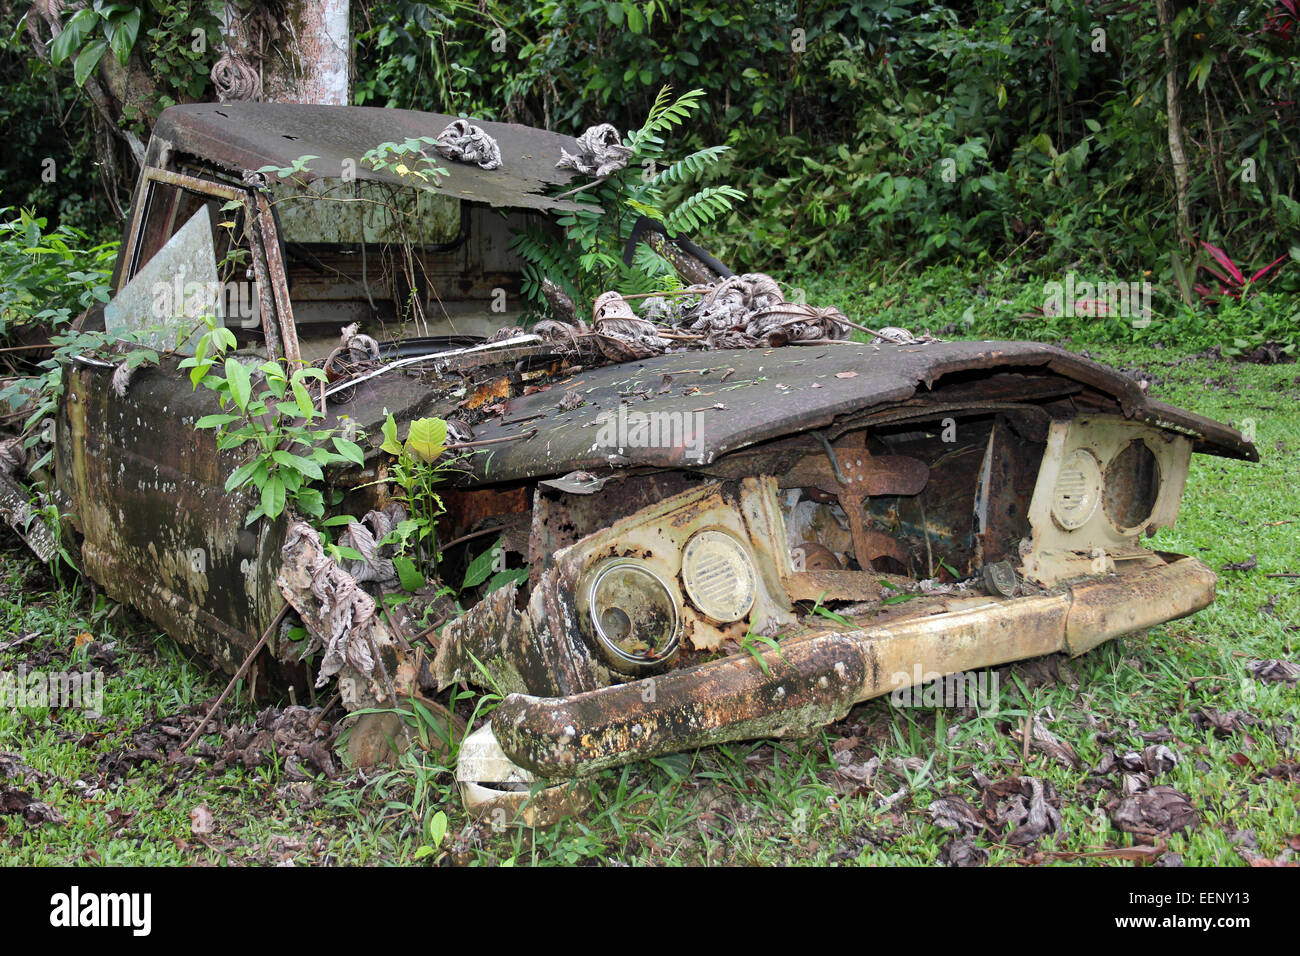 Decrepit rusting old J10 Jeep pickup truck being reclaimed by nature with ferns and plants growing from it - Stock Image